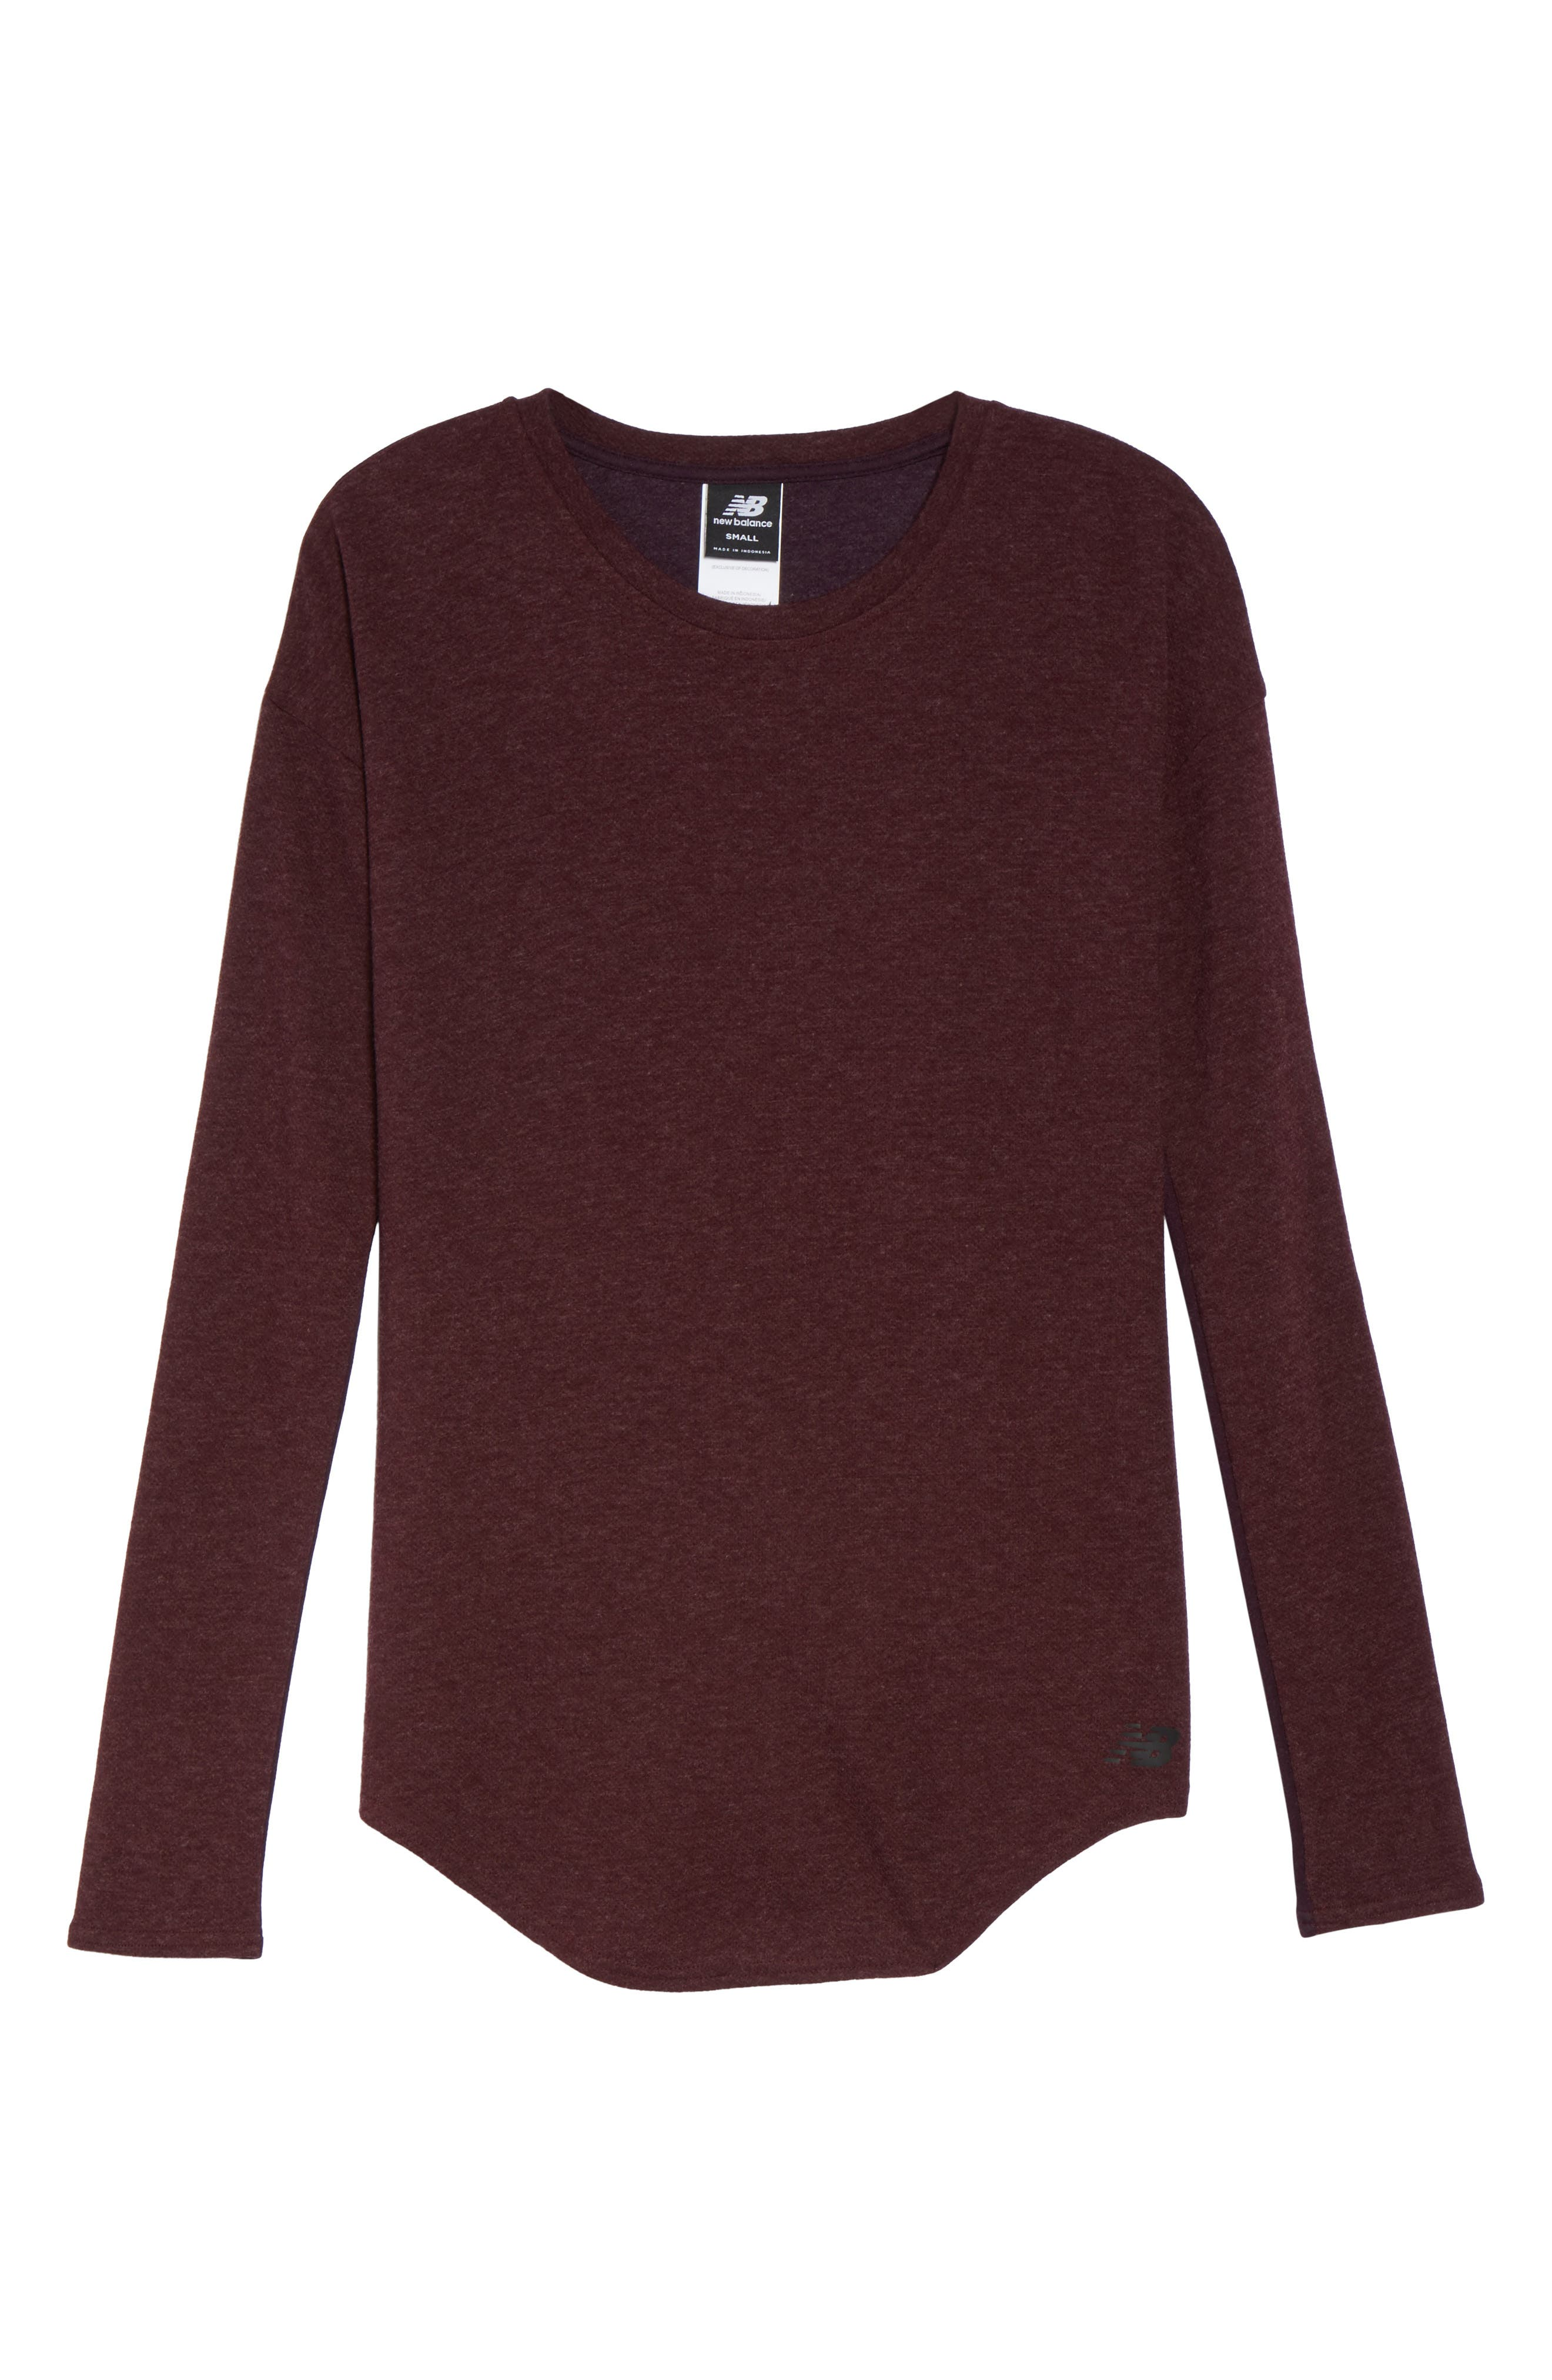 247 Luxe Long Sleeve Tee,                             Alternate thumbnail 7, color,                             930